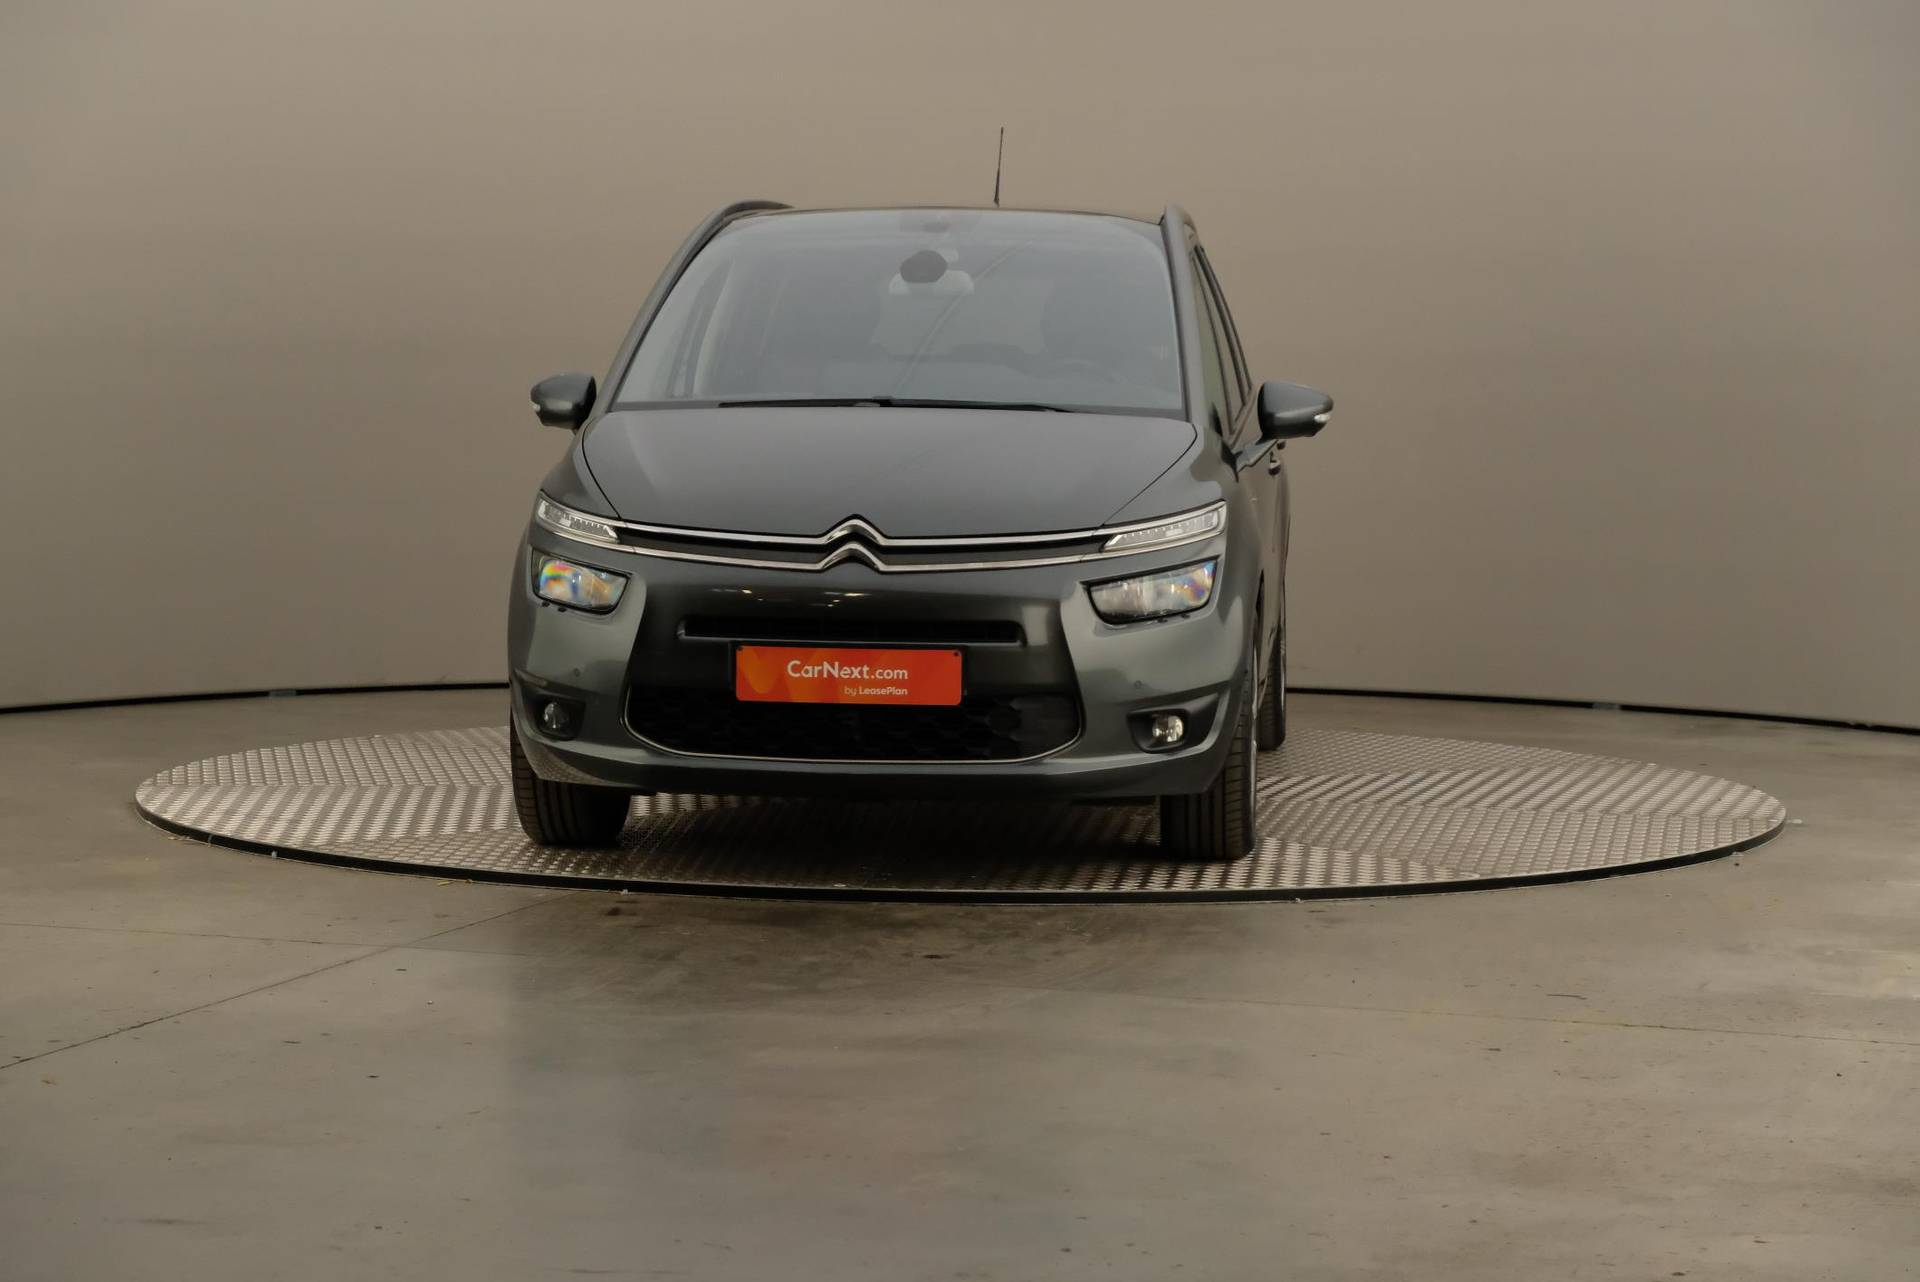 Citroën C4 Picasso e-HDi 115 ETG6, Attraction 7pl. PANO SOUND SYST. GPS CAMERA TREKHAAK..., 360-image32